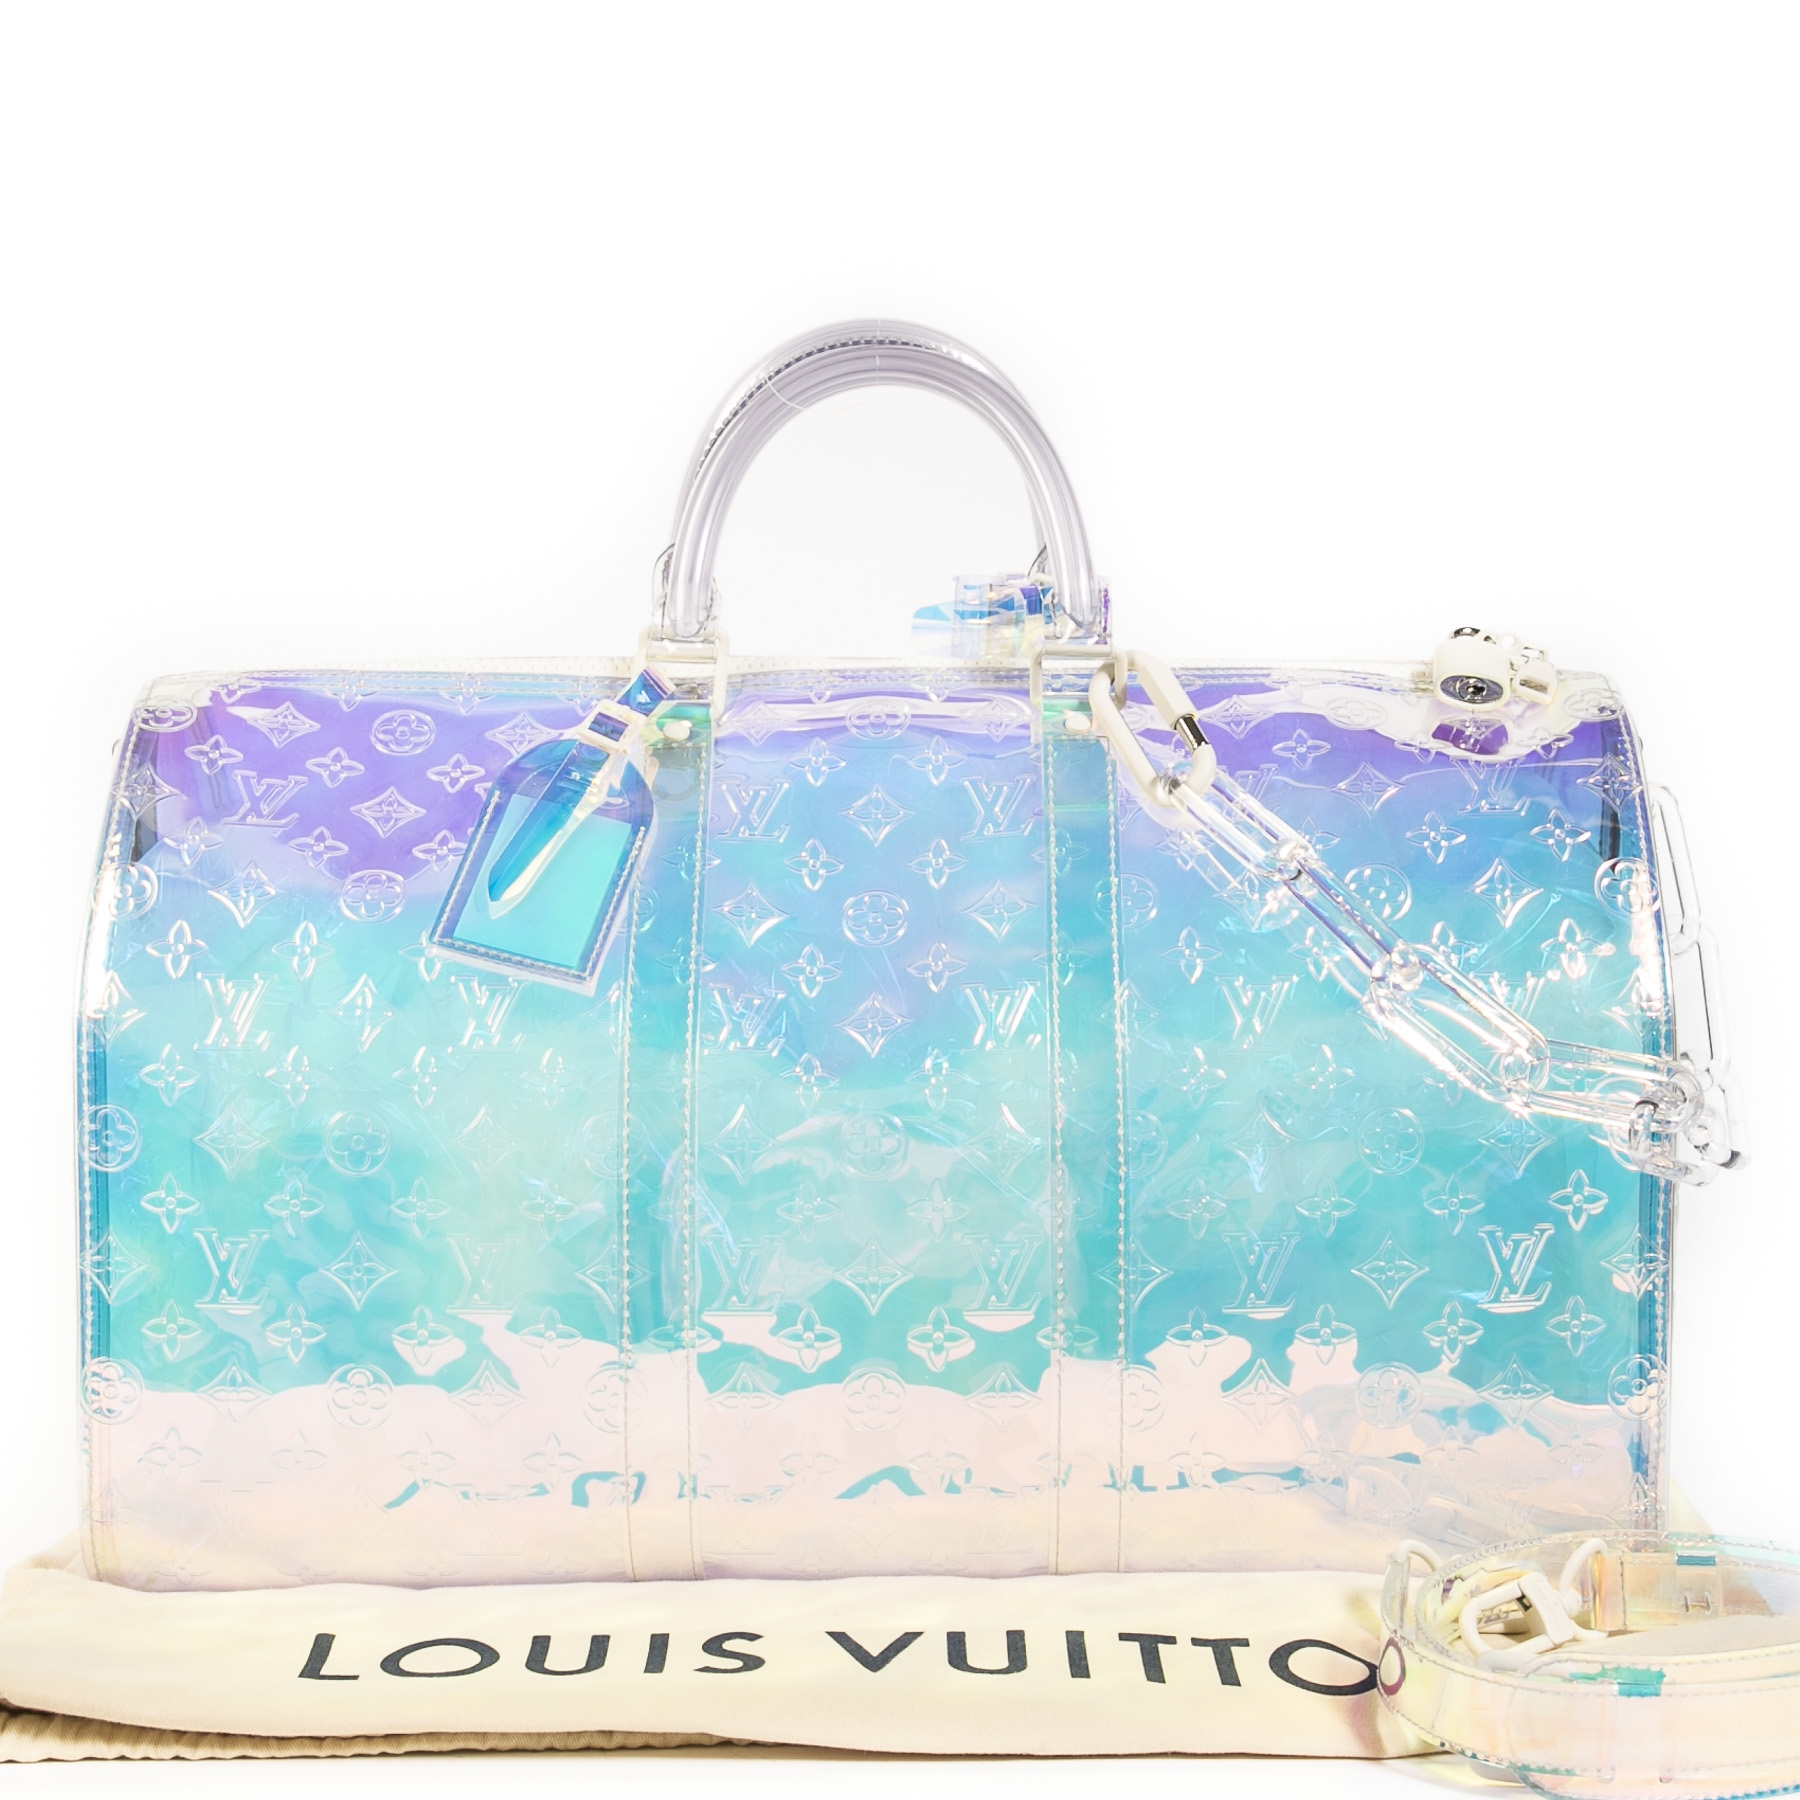 Louis Vuitton Keepall Bandouliere Monogram 50 Prism Limited Edition